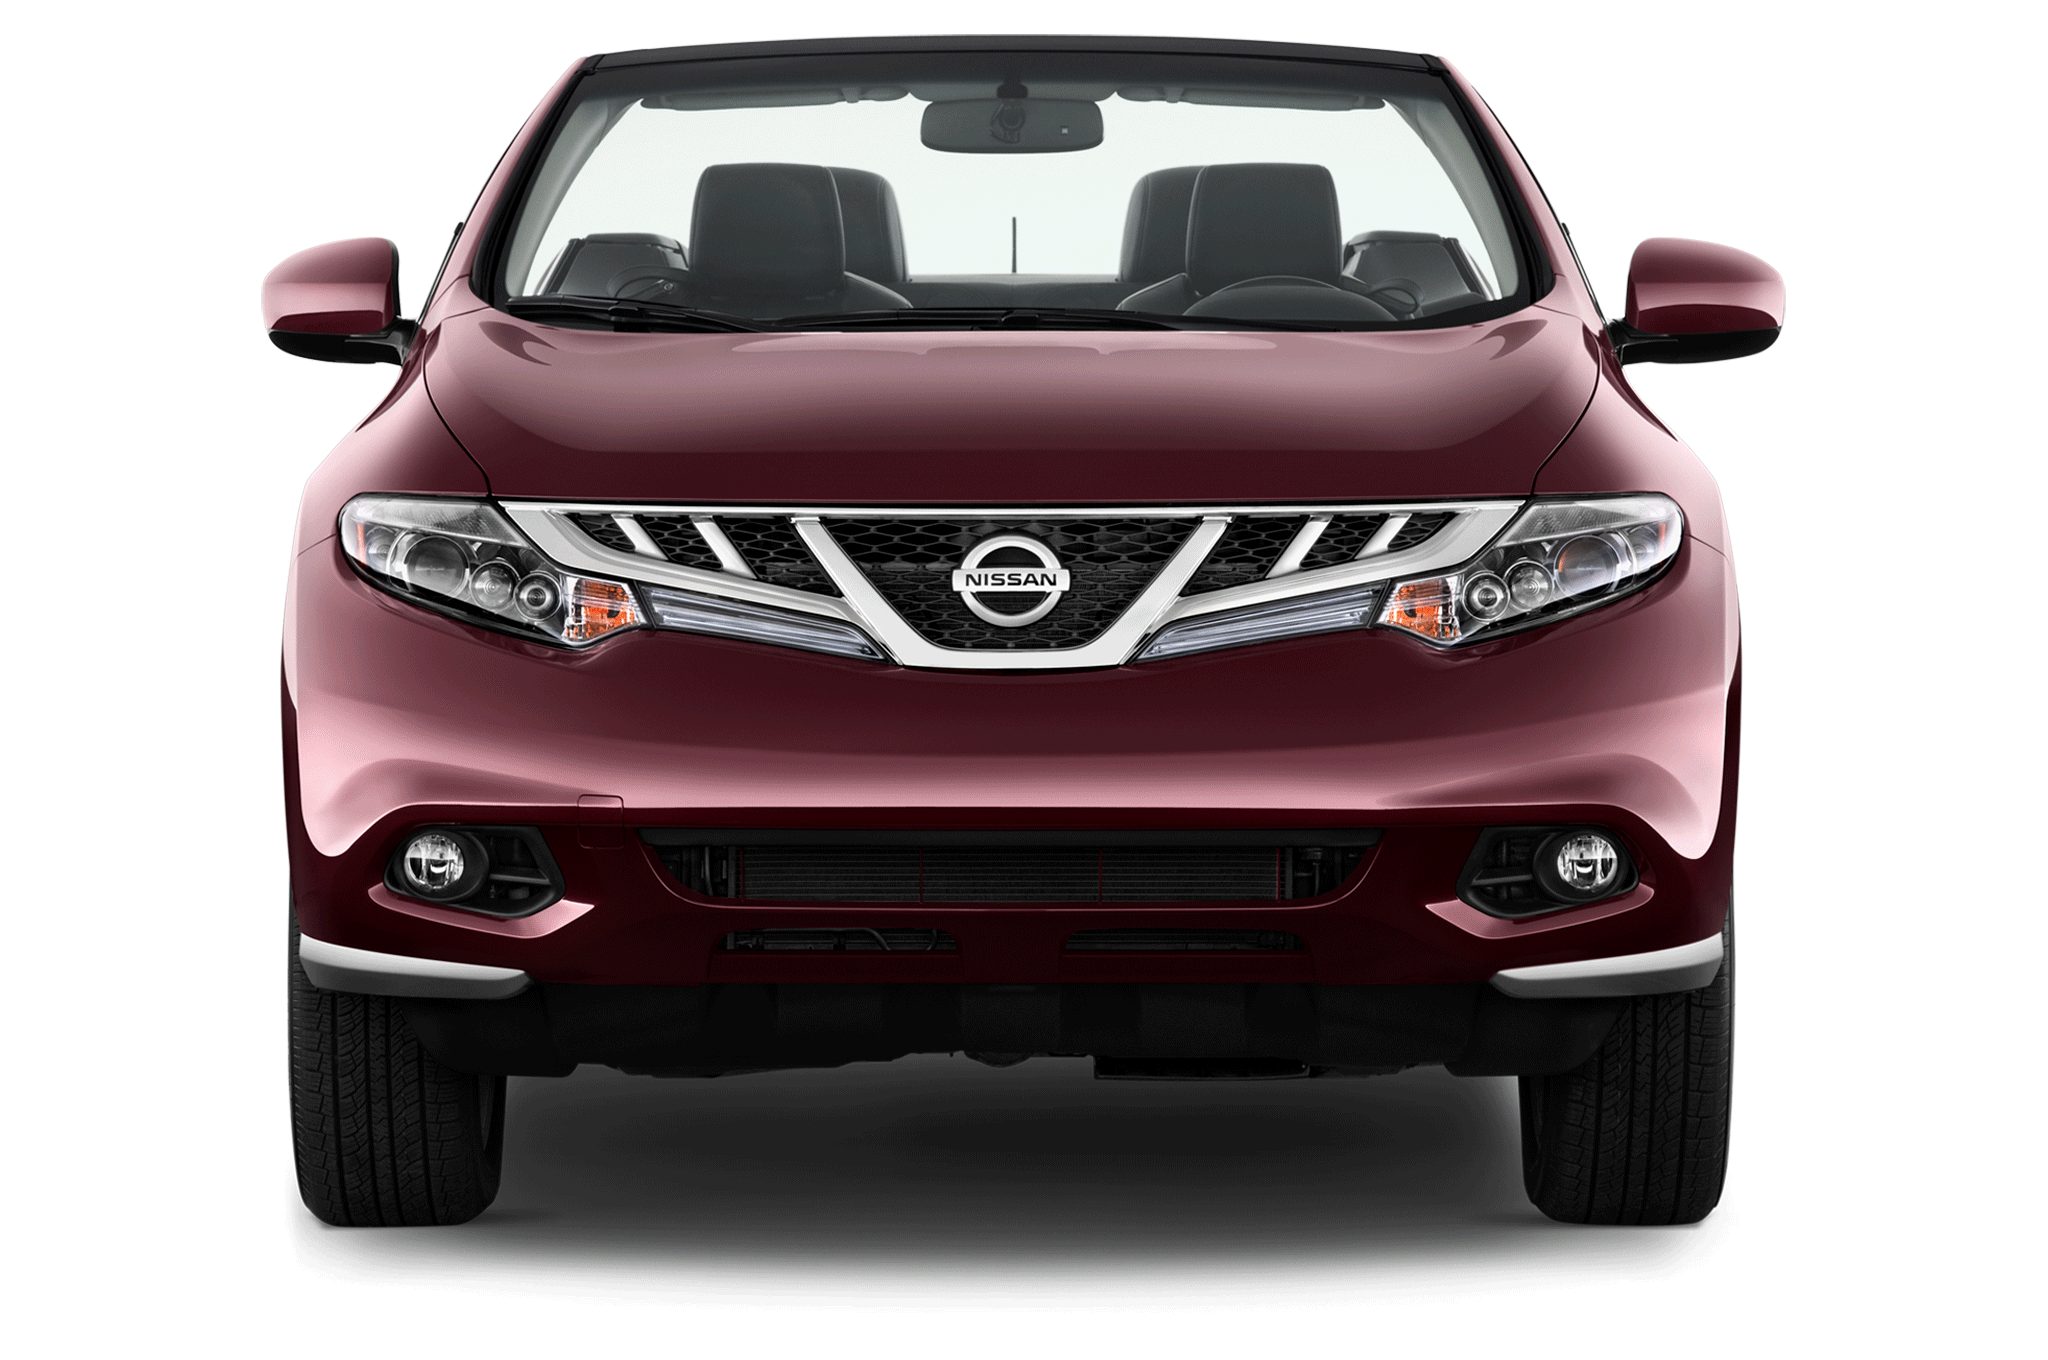 Nissan Murano PNG Clipart.